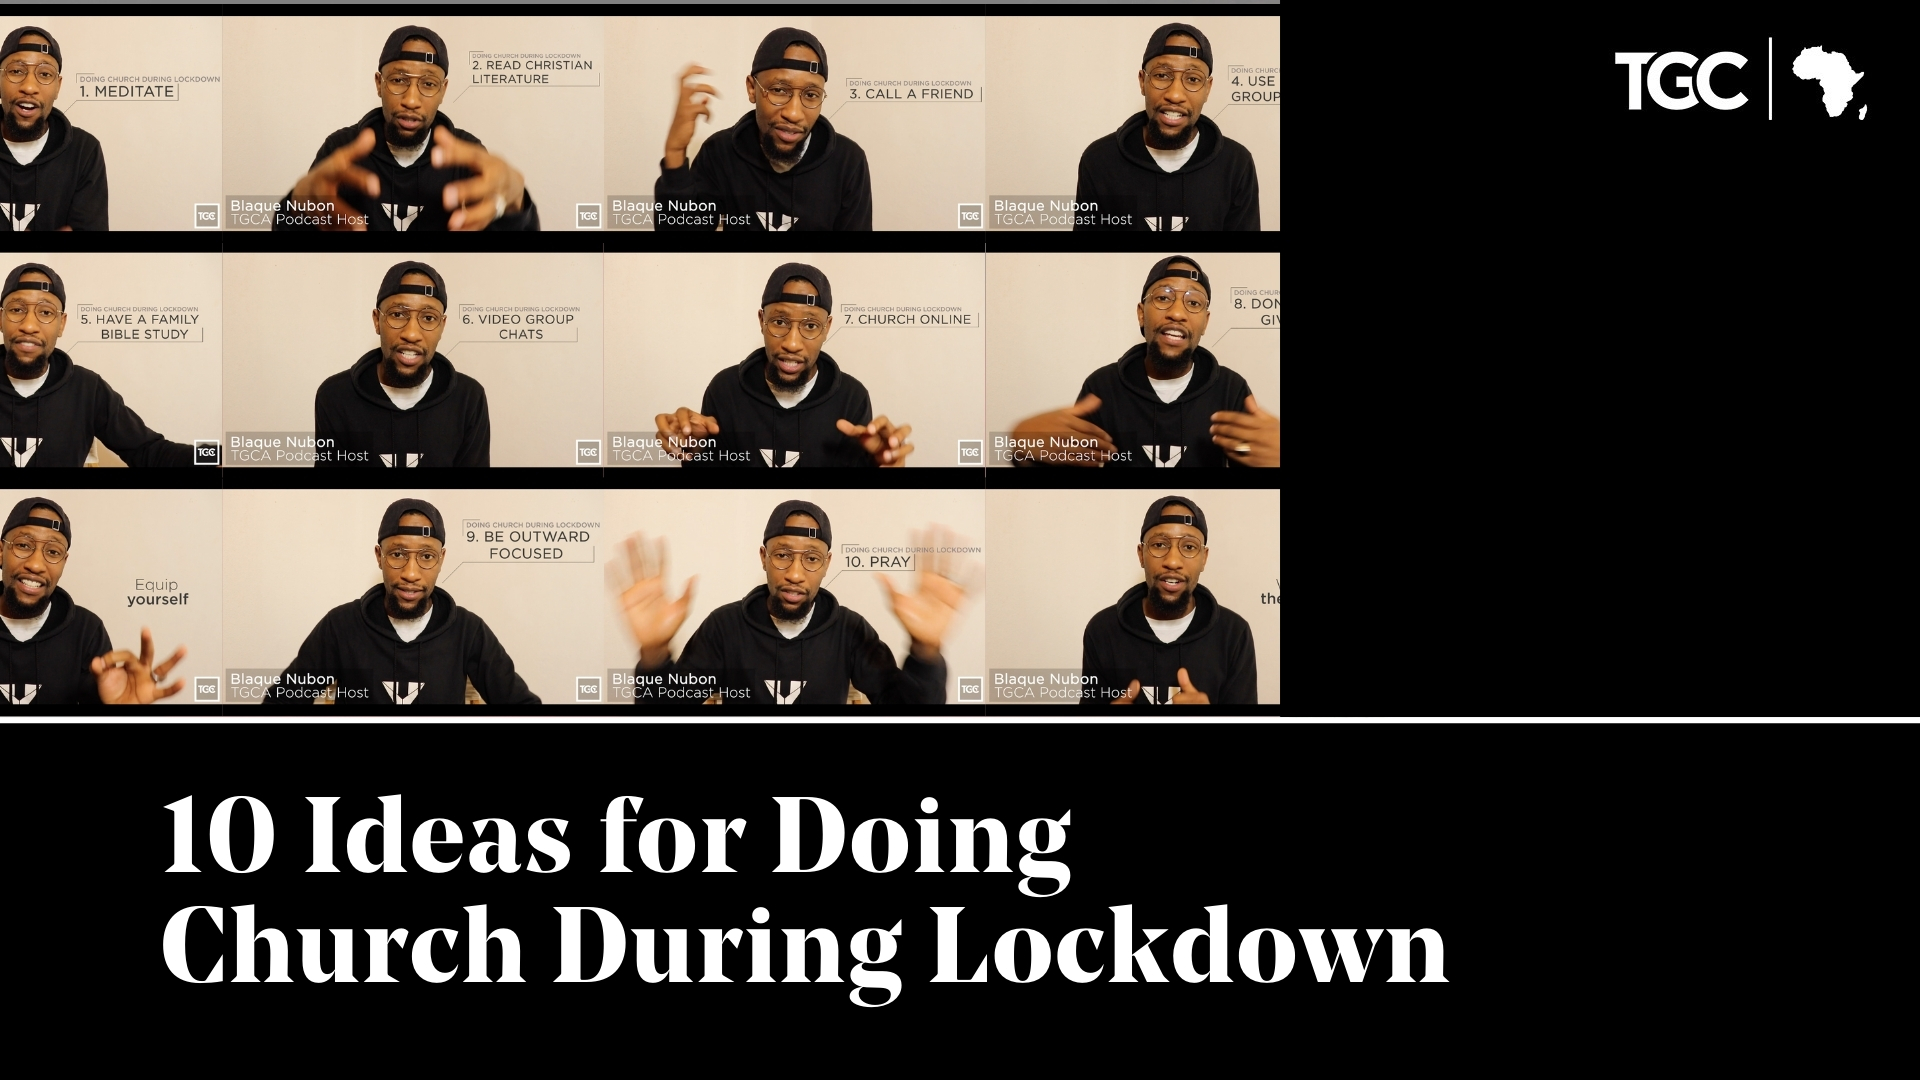 10 Ideas for Doing Church in Lockdown video cover - Blaque Nubon talking to camera